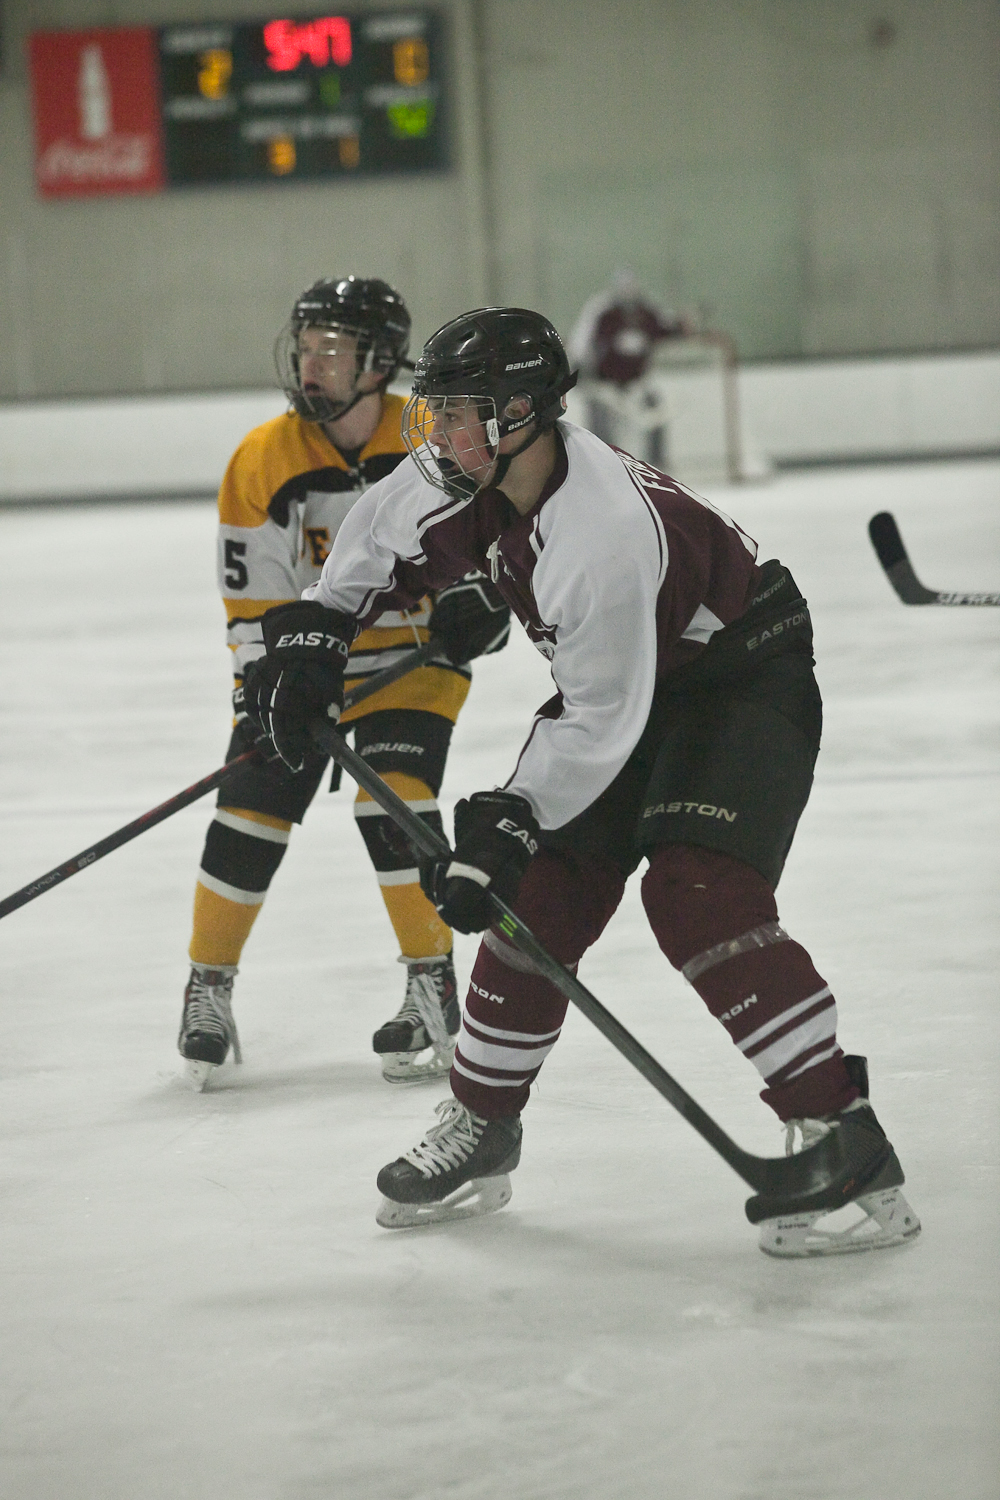 High School Hockey in Newark, Delaware on January 30, 2015